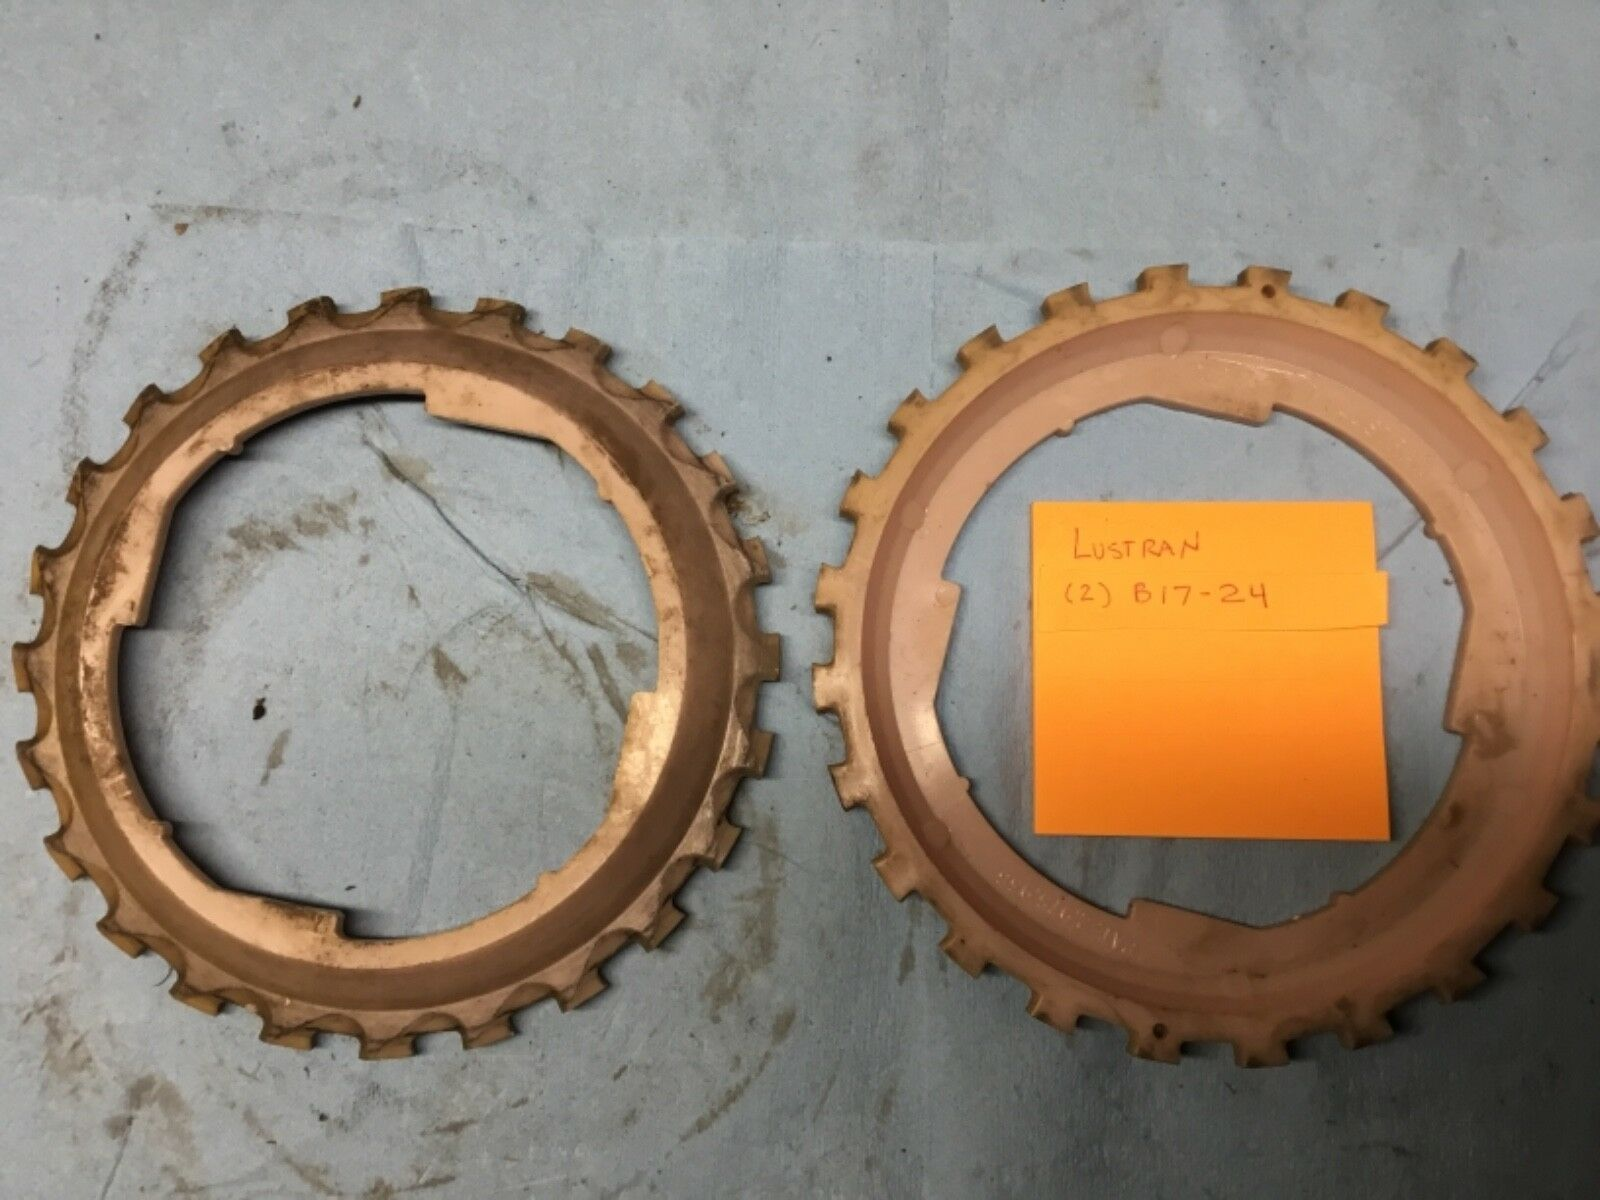 John Deere Lustran Planter Plates Discs For Corn B17 24 Flat Wiring Harness 1 Of 2only 3 Available